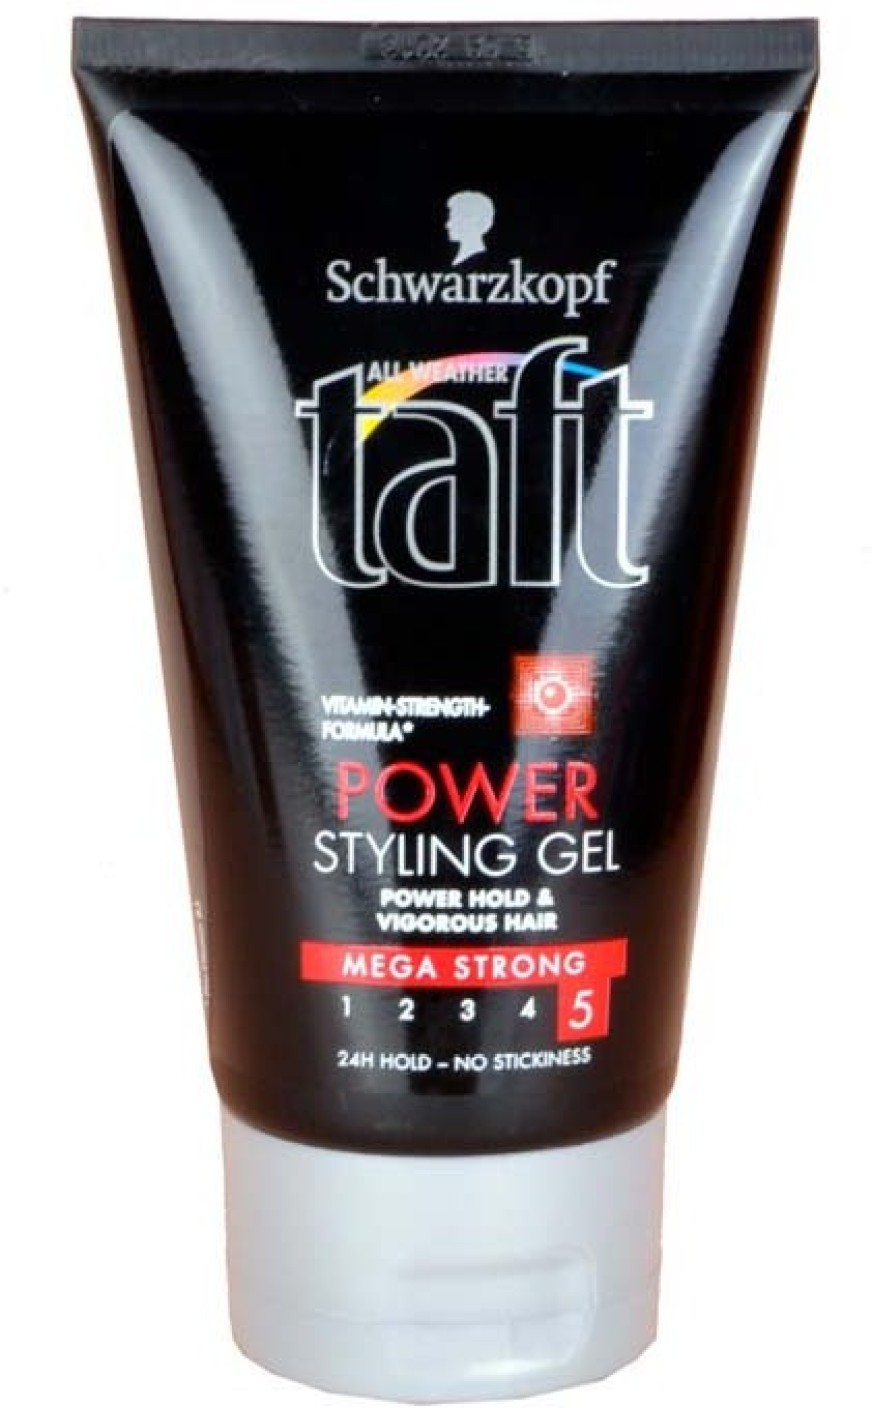 styling mousse for hair schwarzkopf professional taft power styling gel hair 1408